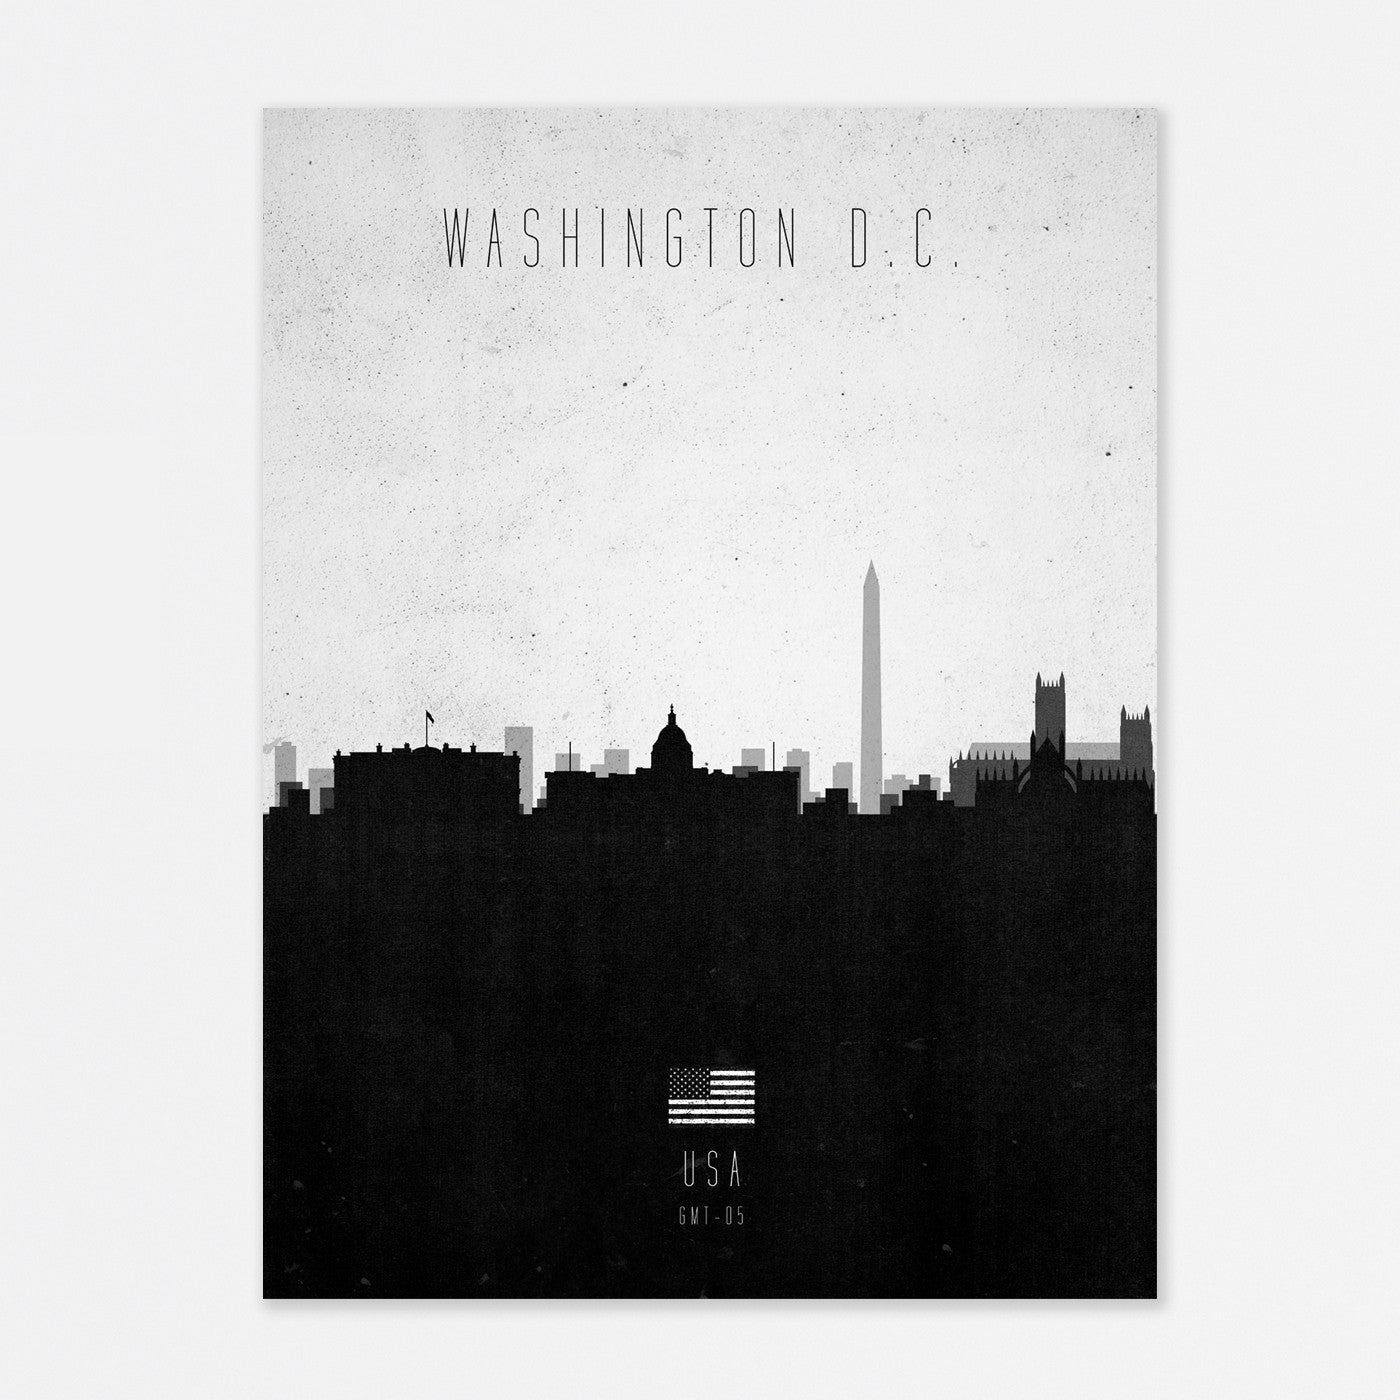 Washington DC: GMT -05